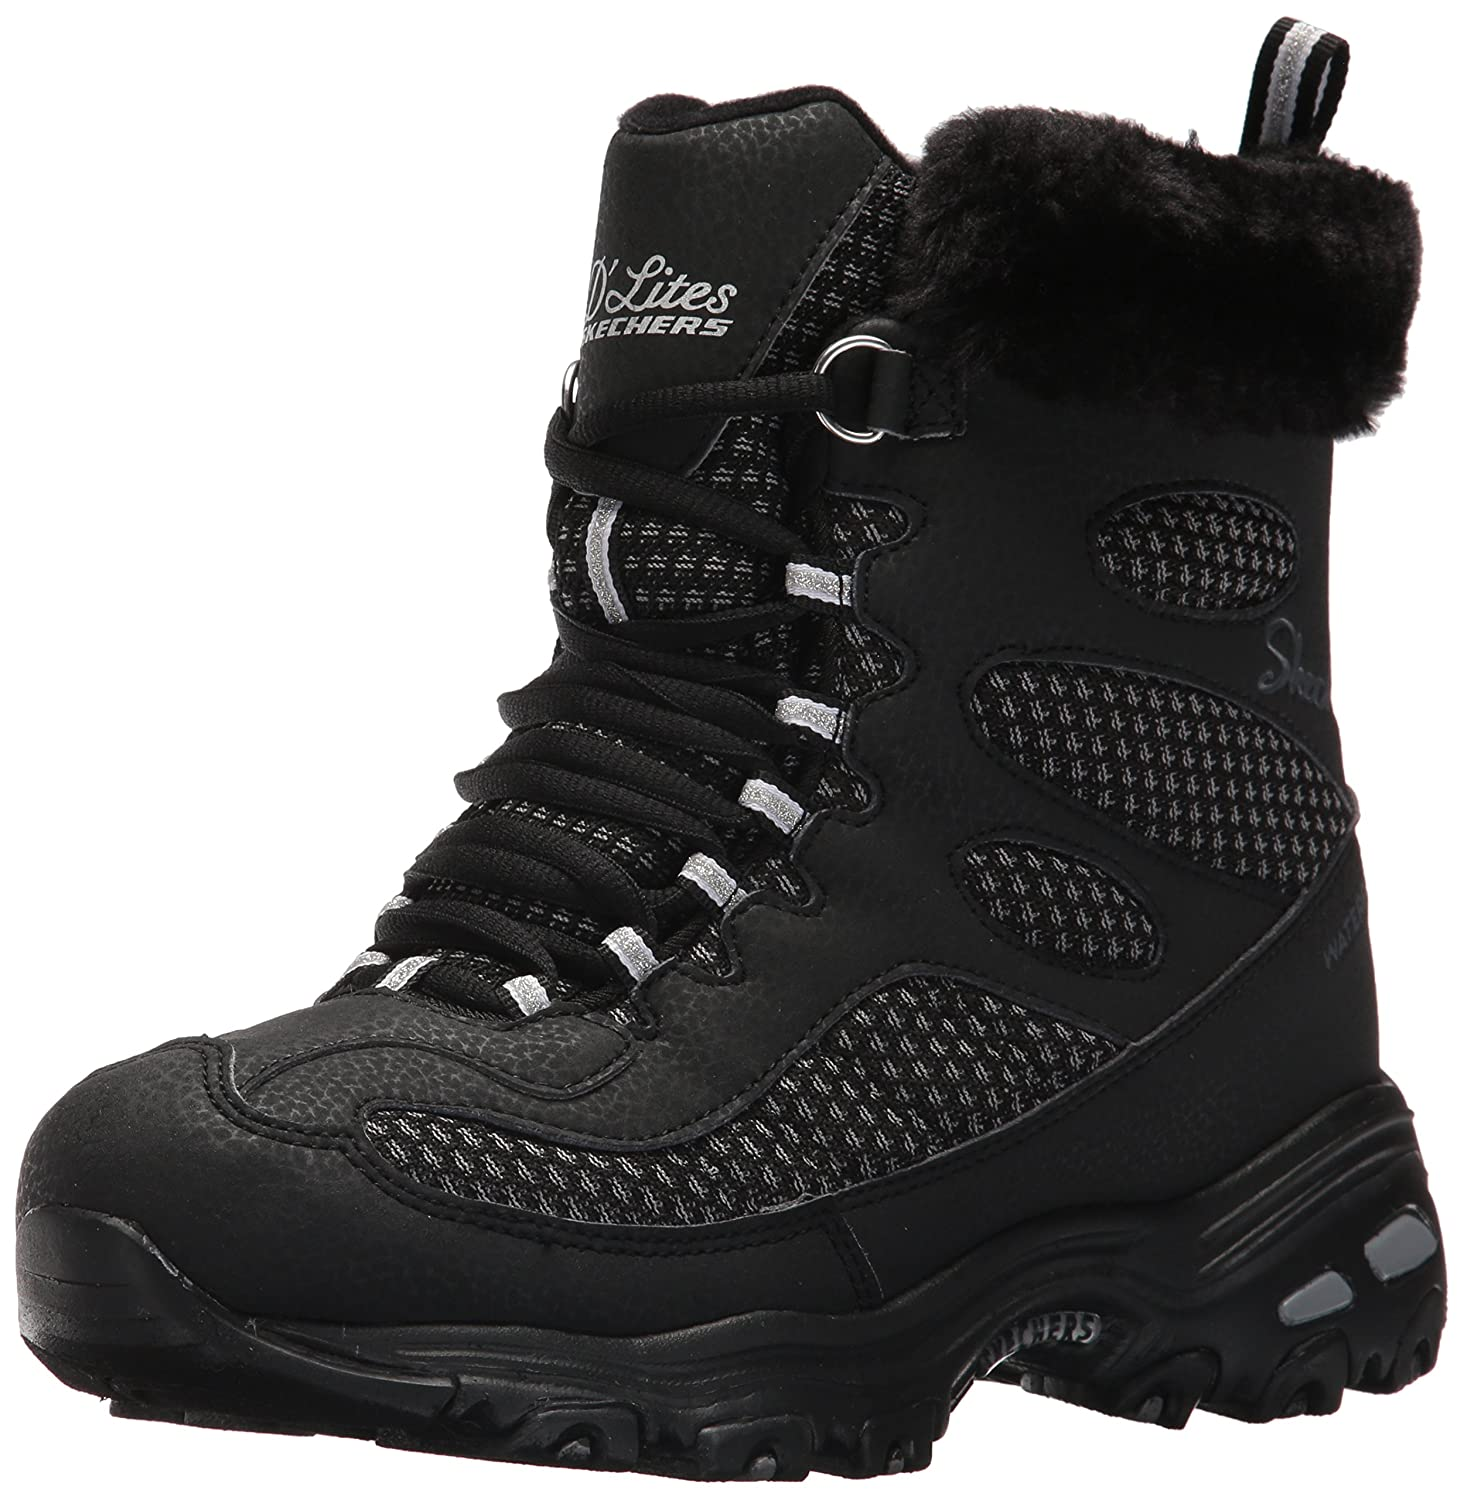 Skechers Women's D'Lites Winter Boot B06XD3RYF6 5 B(M) US|Black